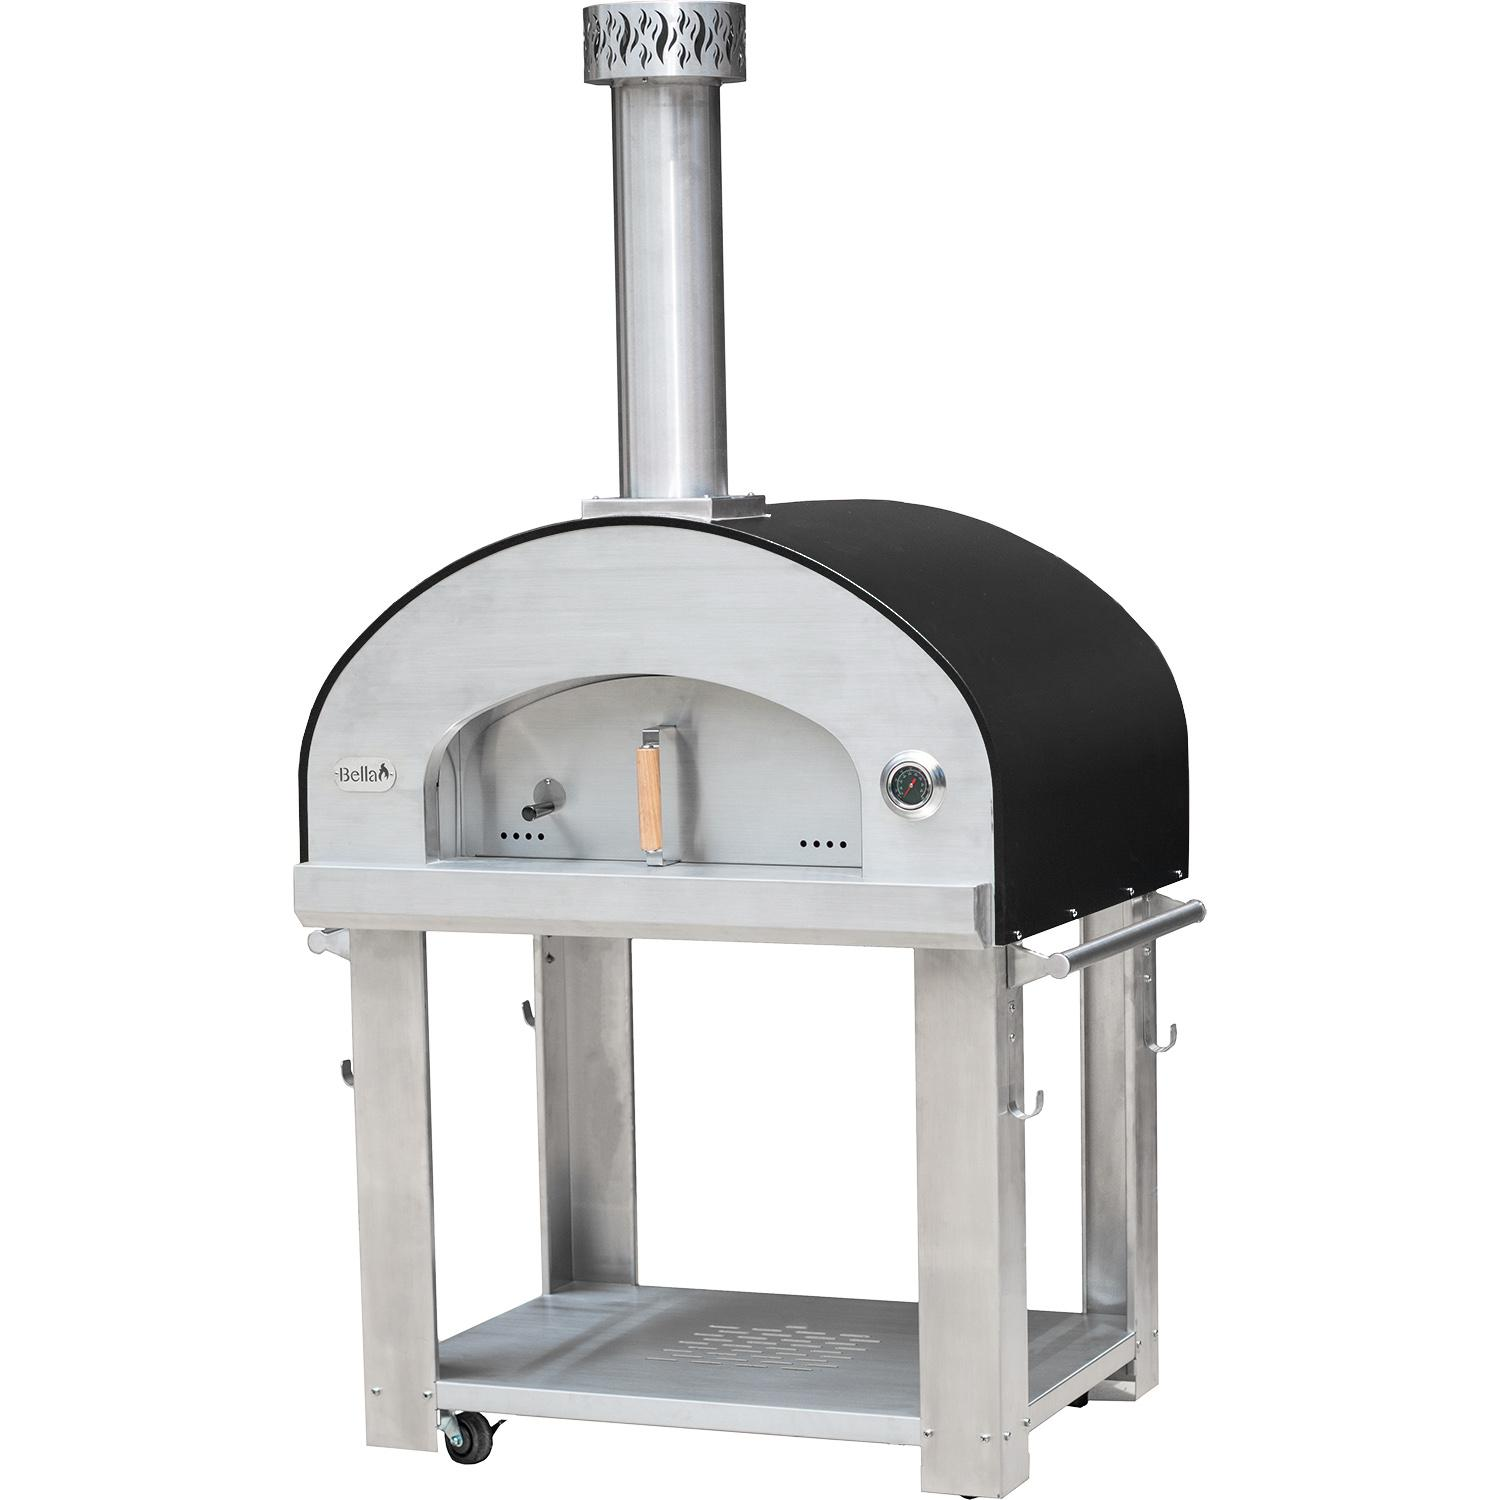 "Bella Outdoor Living Bella Grande 36"" Outdoor Wood Fired Pizza Oven On Cart - Black - Begs36b"